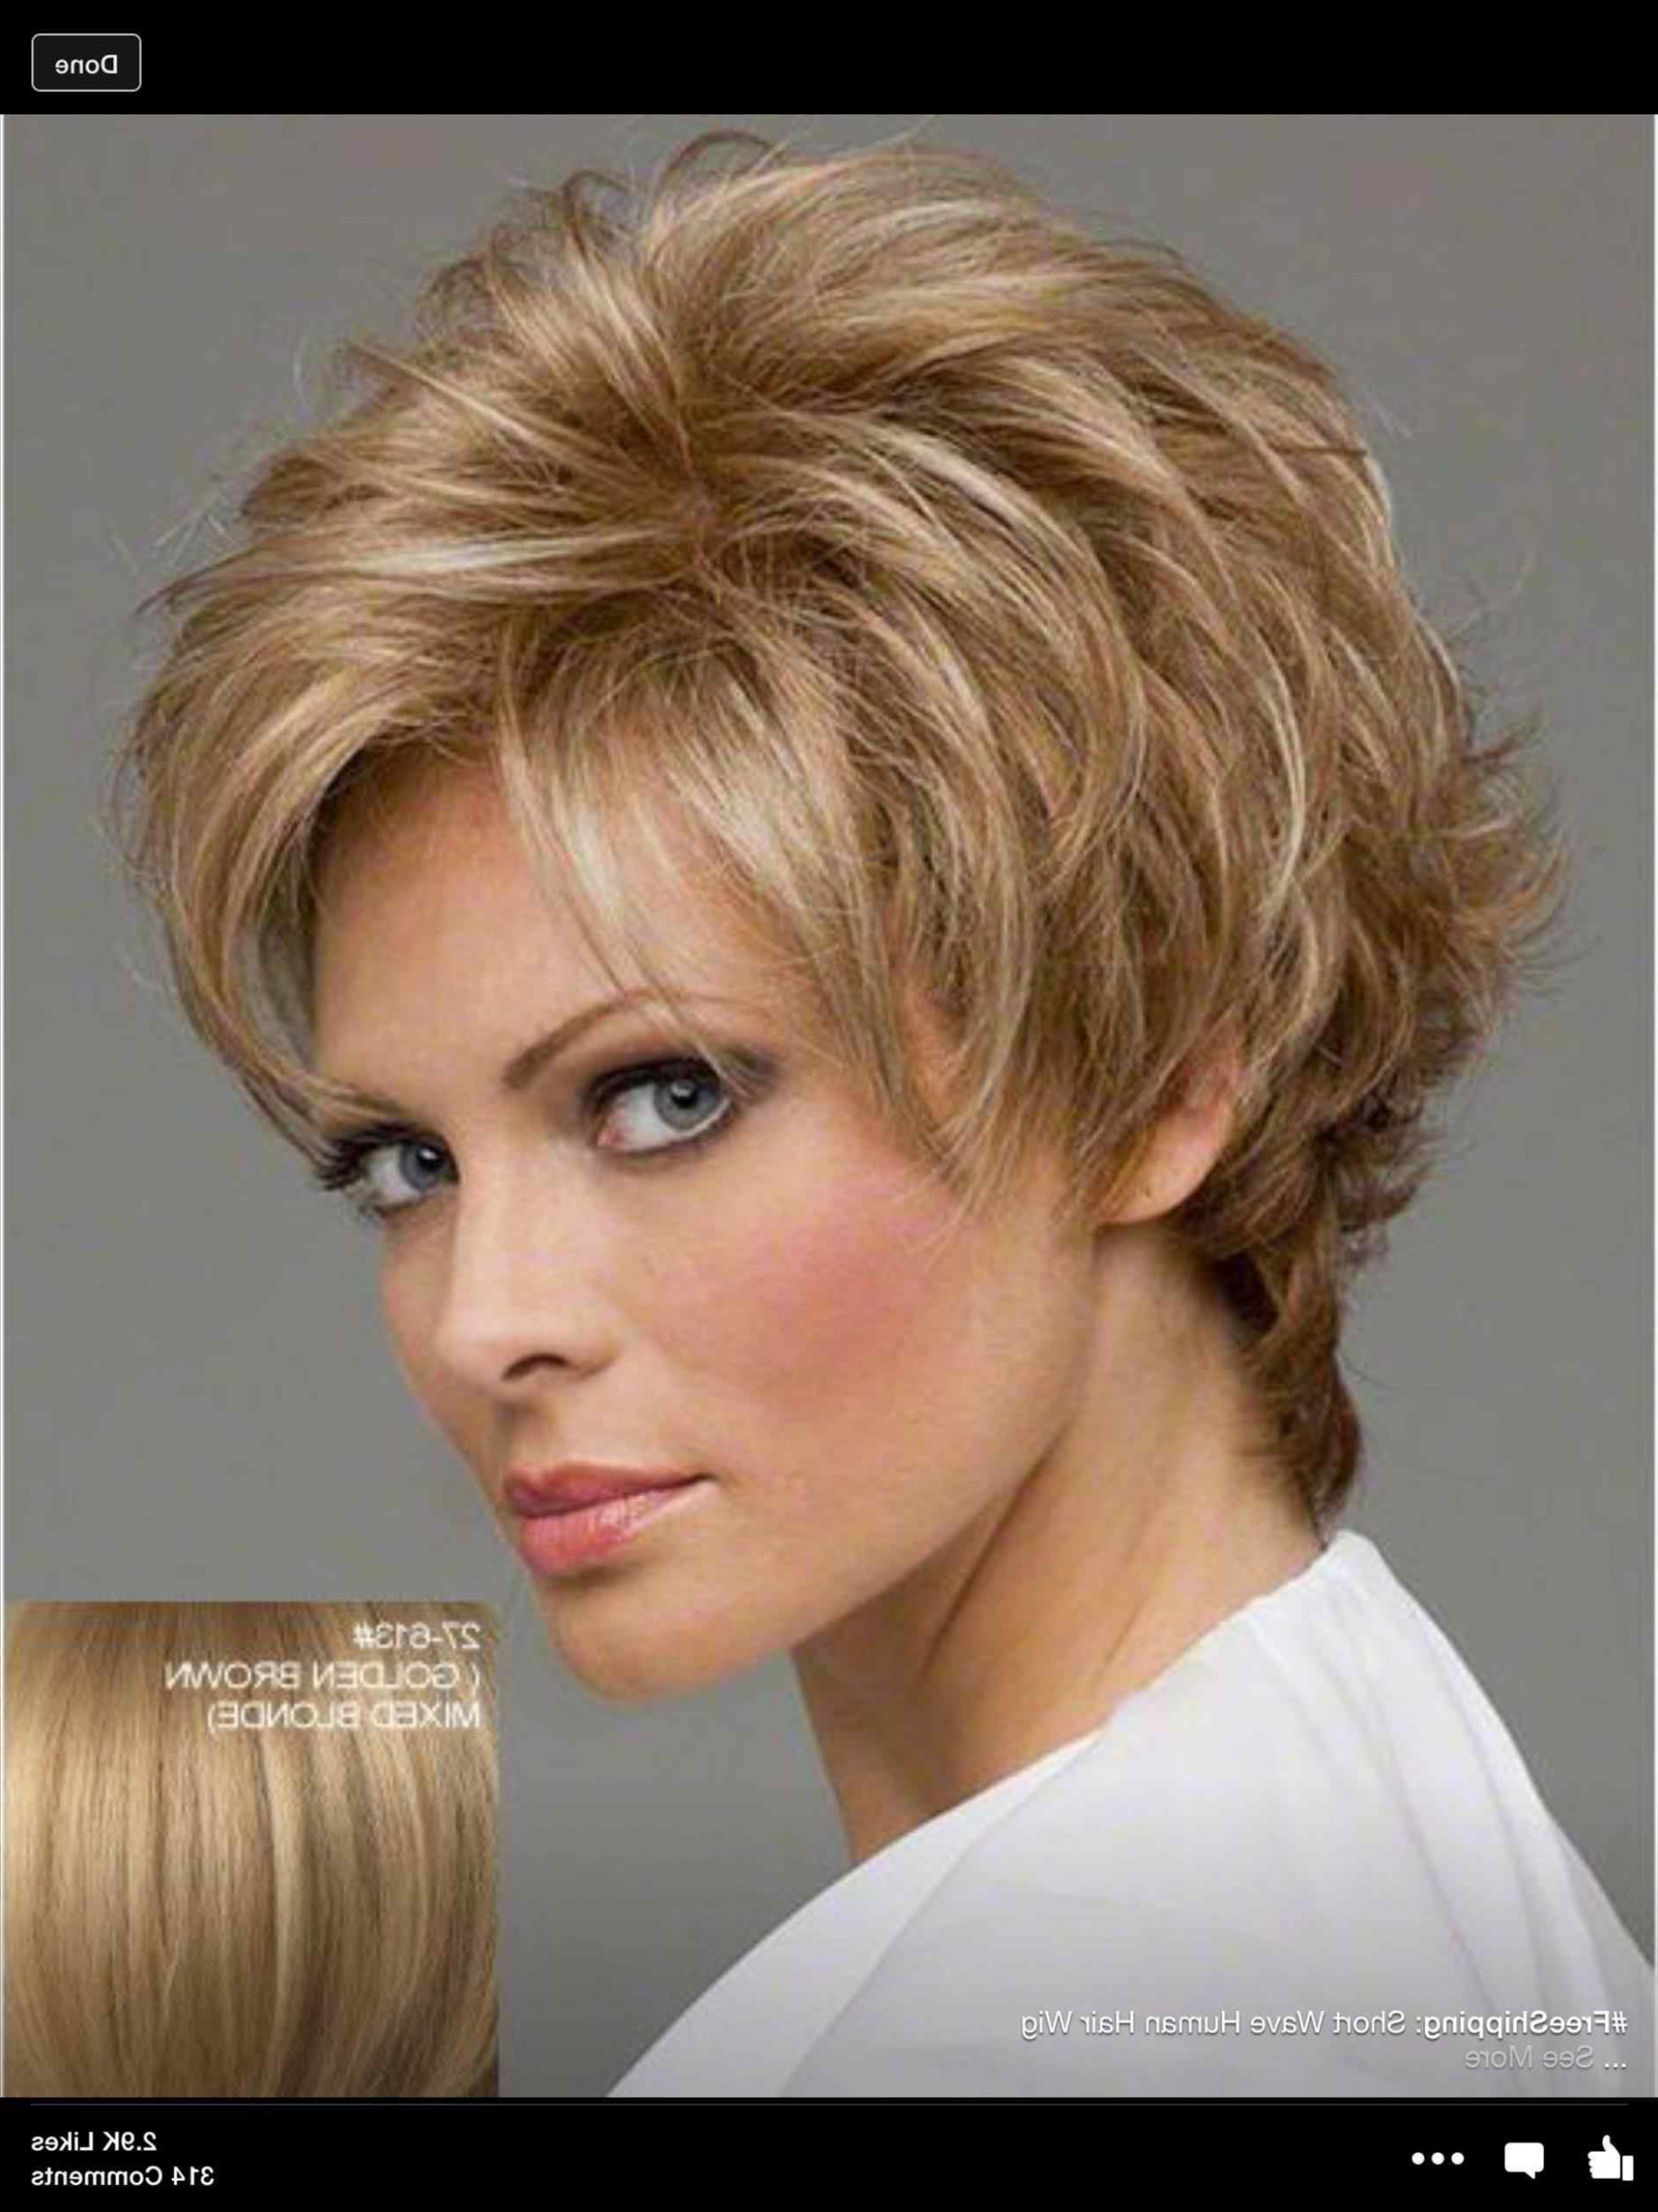 And Round Faces Beautiful Short Hairstyles For Fine Hair With Short Hairstyles For Thin Fine Hair And Round Face (Gallery 25 of 25)